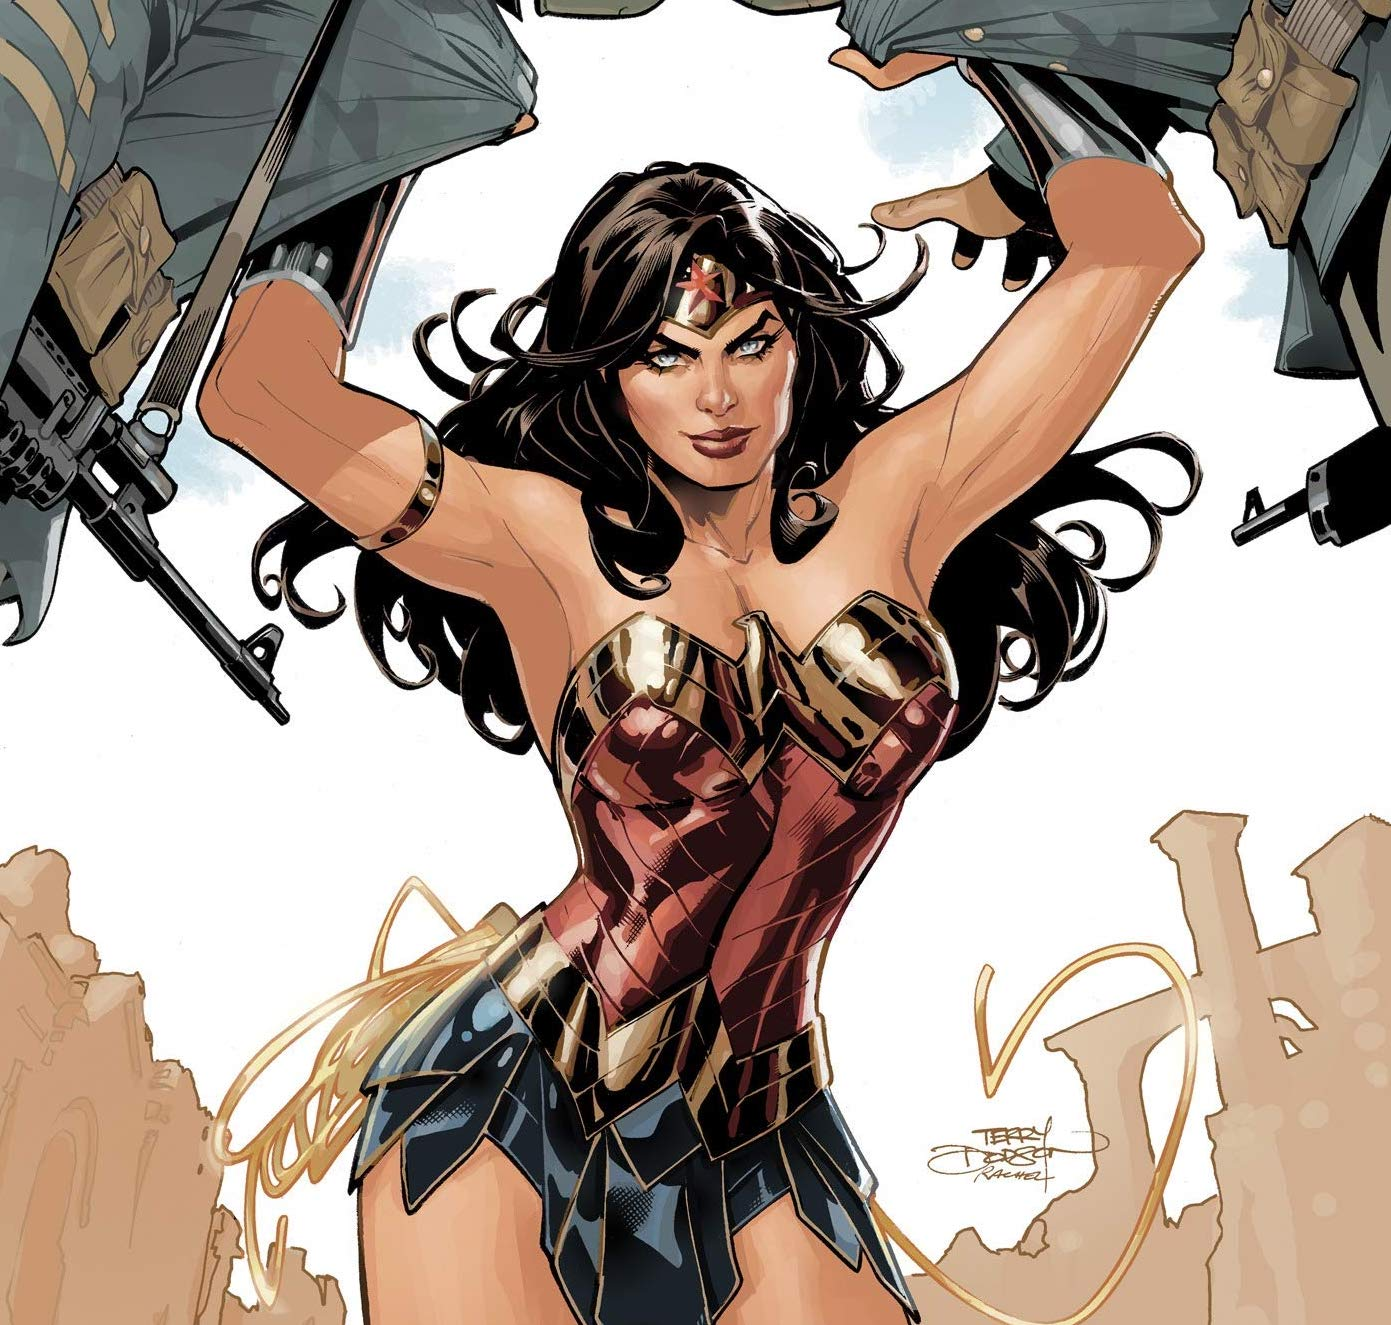 Wonder Woman Vol. 1: The Just War Review